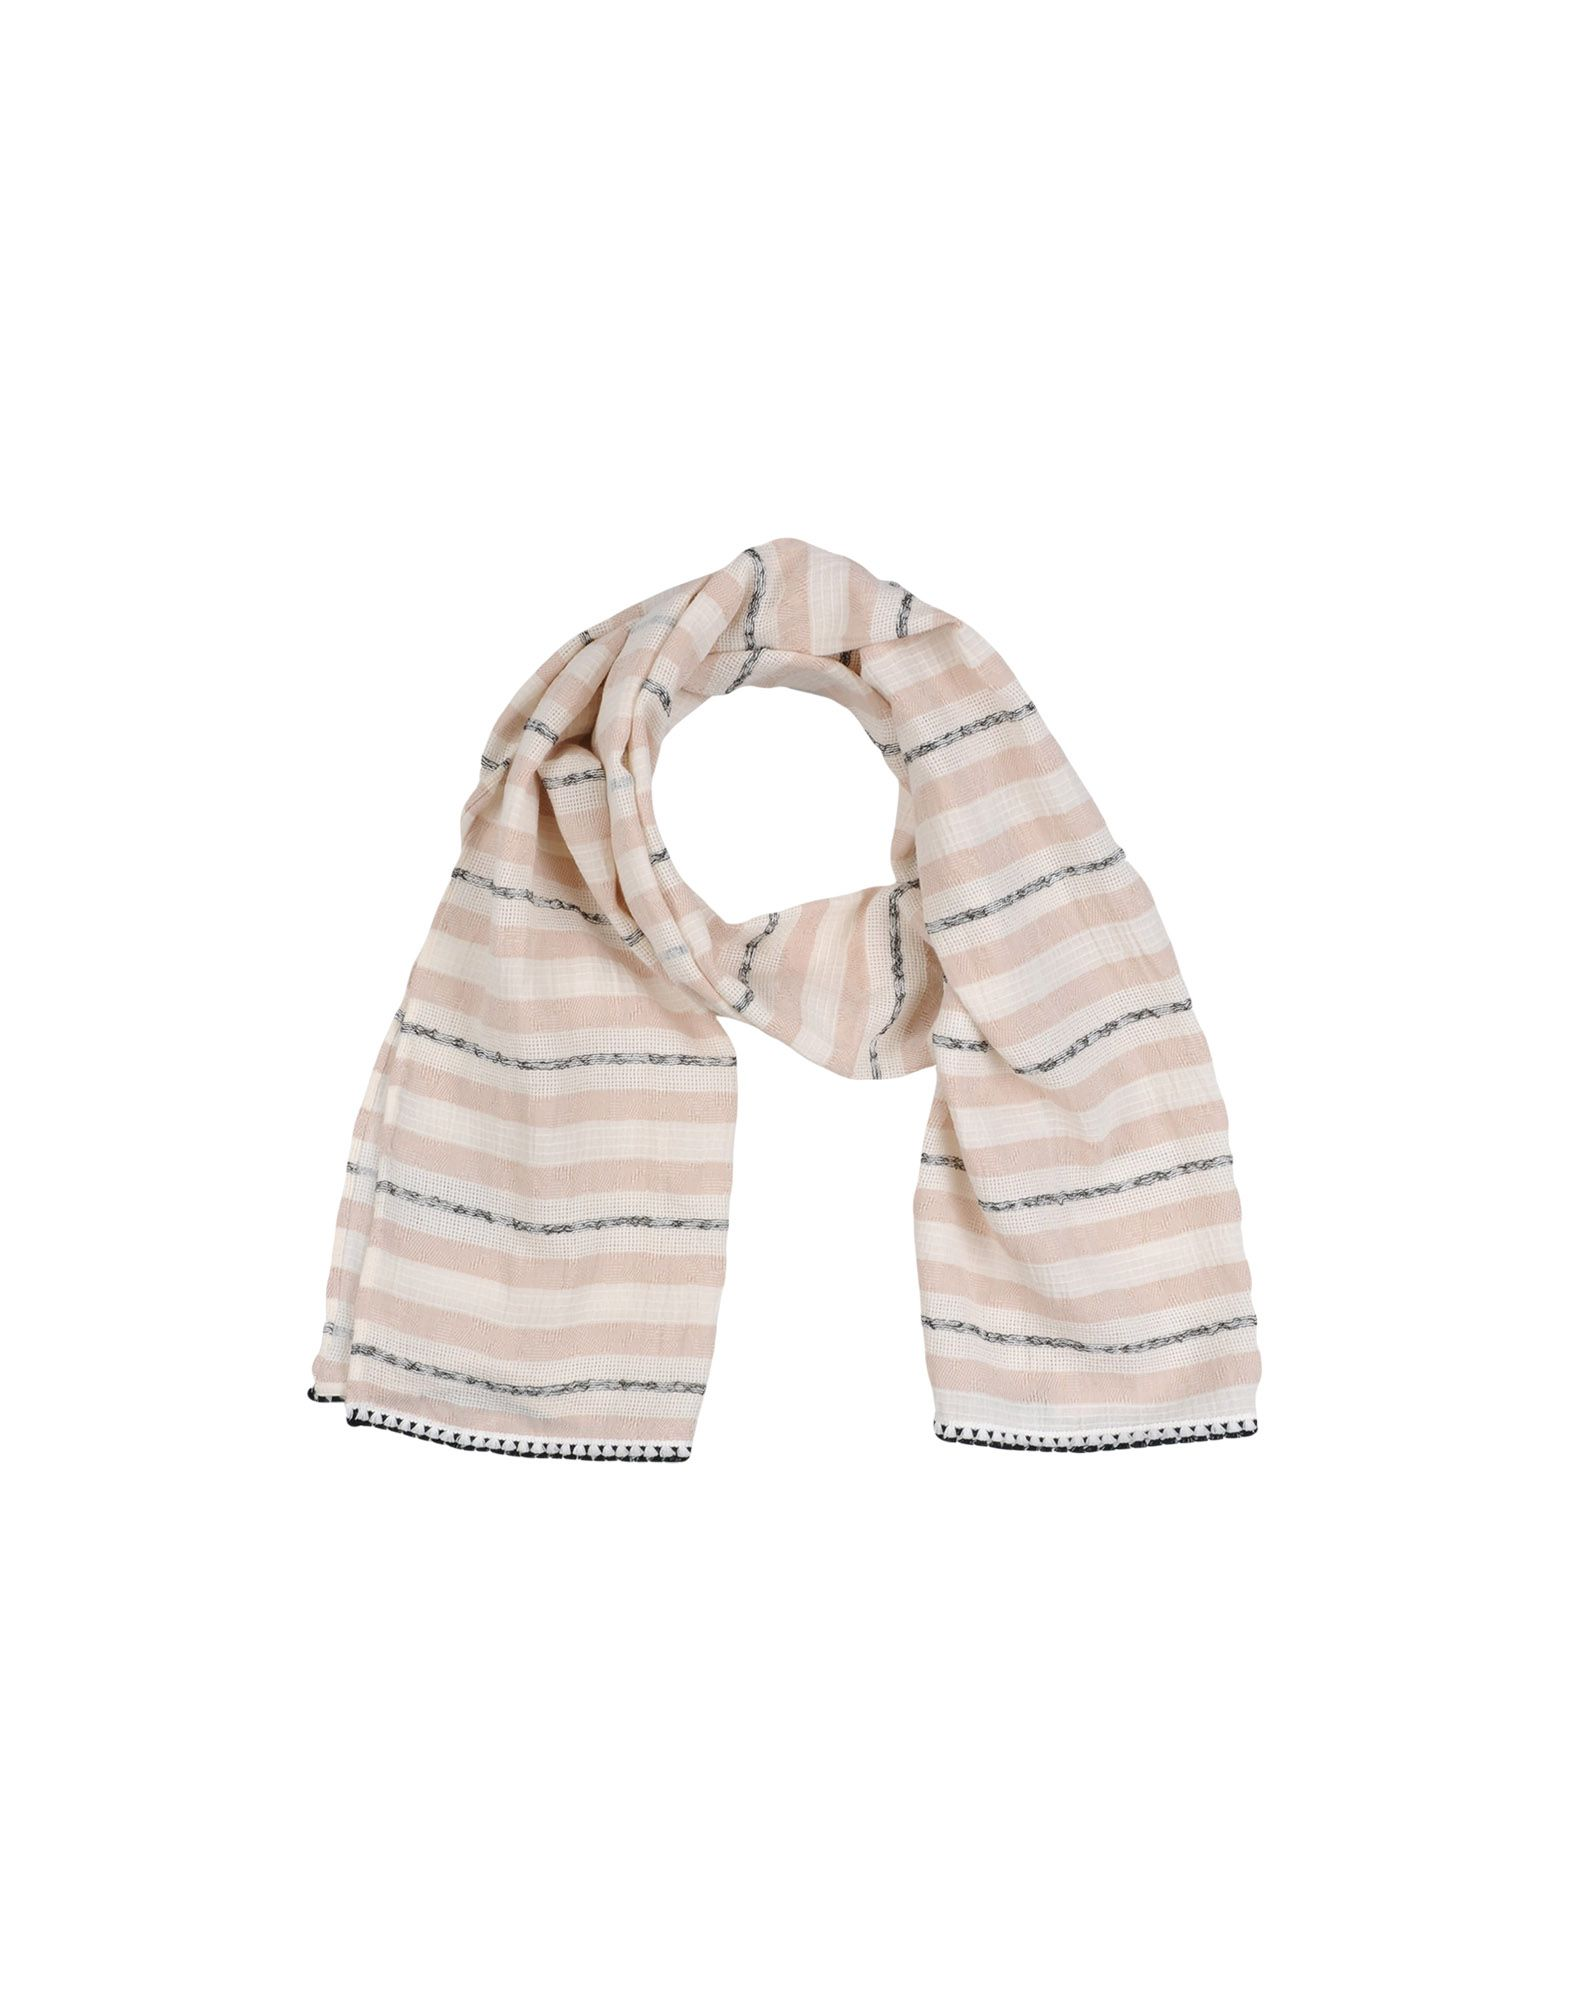 SESSUN Scarves in Beige